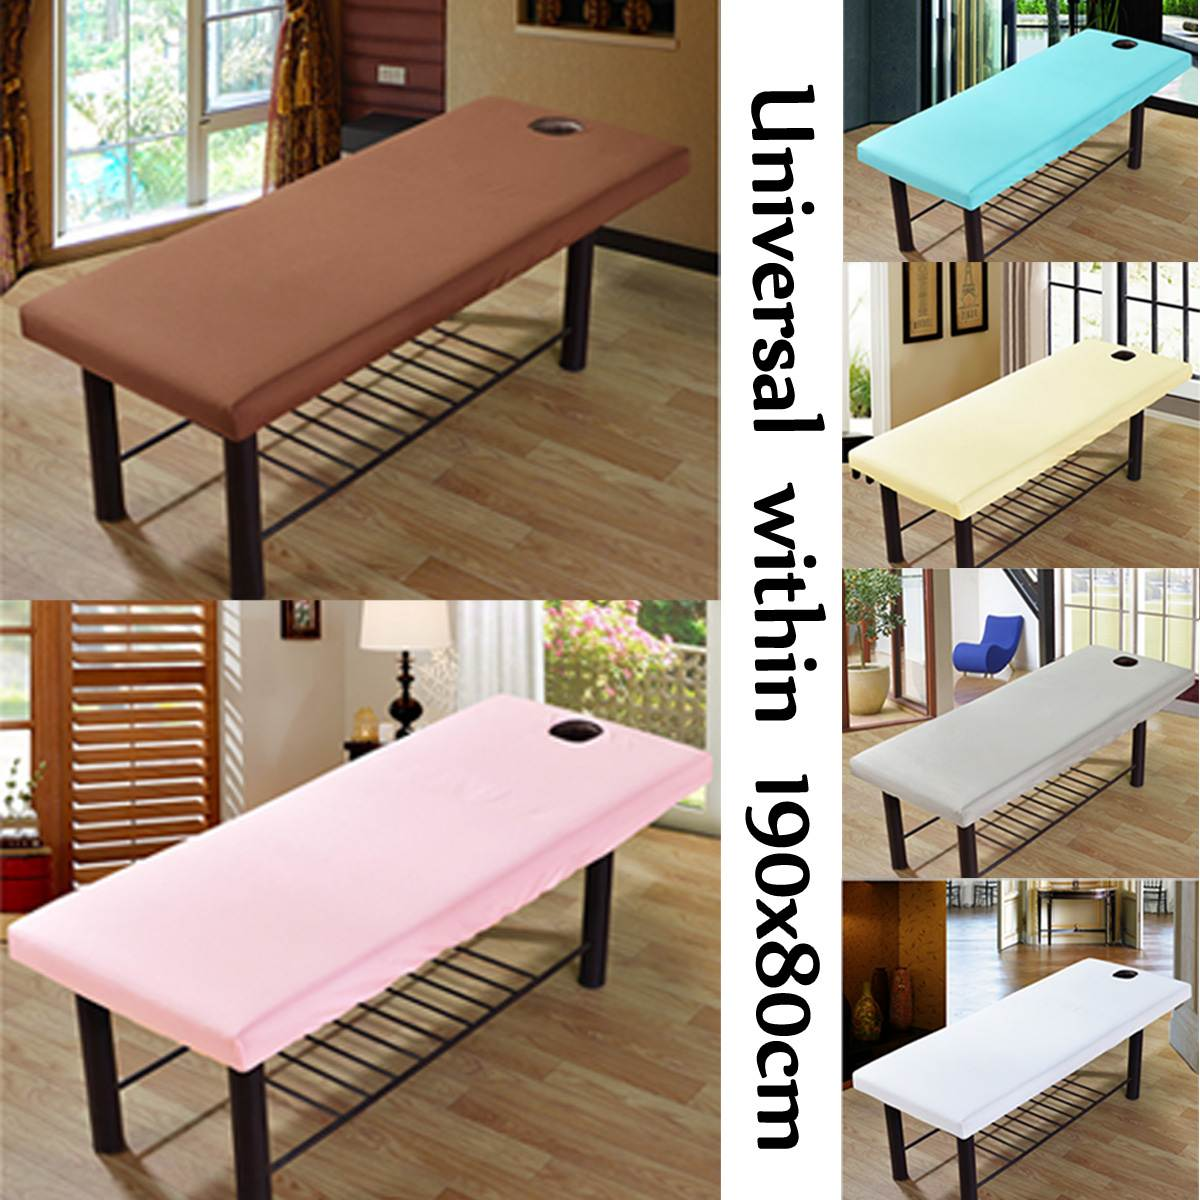 Soft Polyester Massage Bed Cover Beauty Salon Massage Sheet Body SPA Treatment Relaxation Bedsheet With Face Breath Hole 2